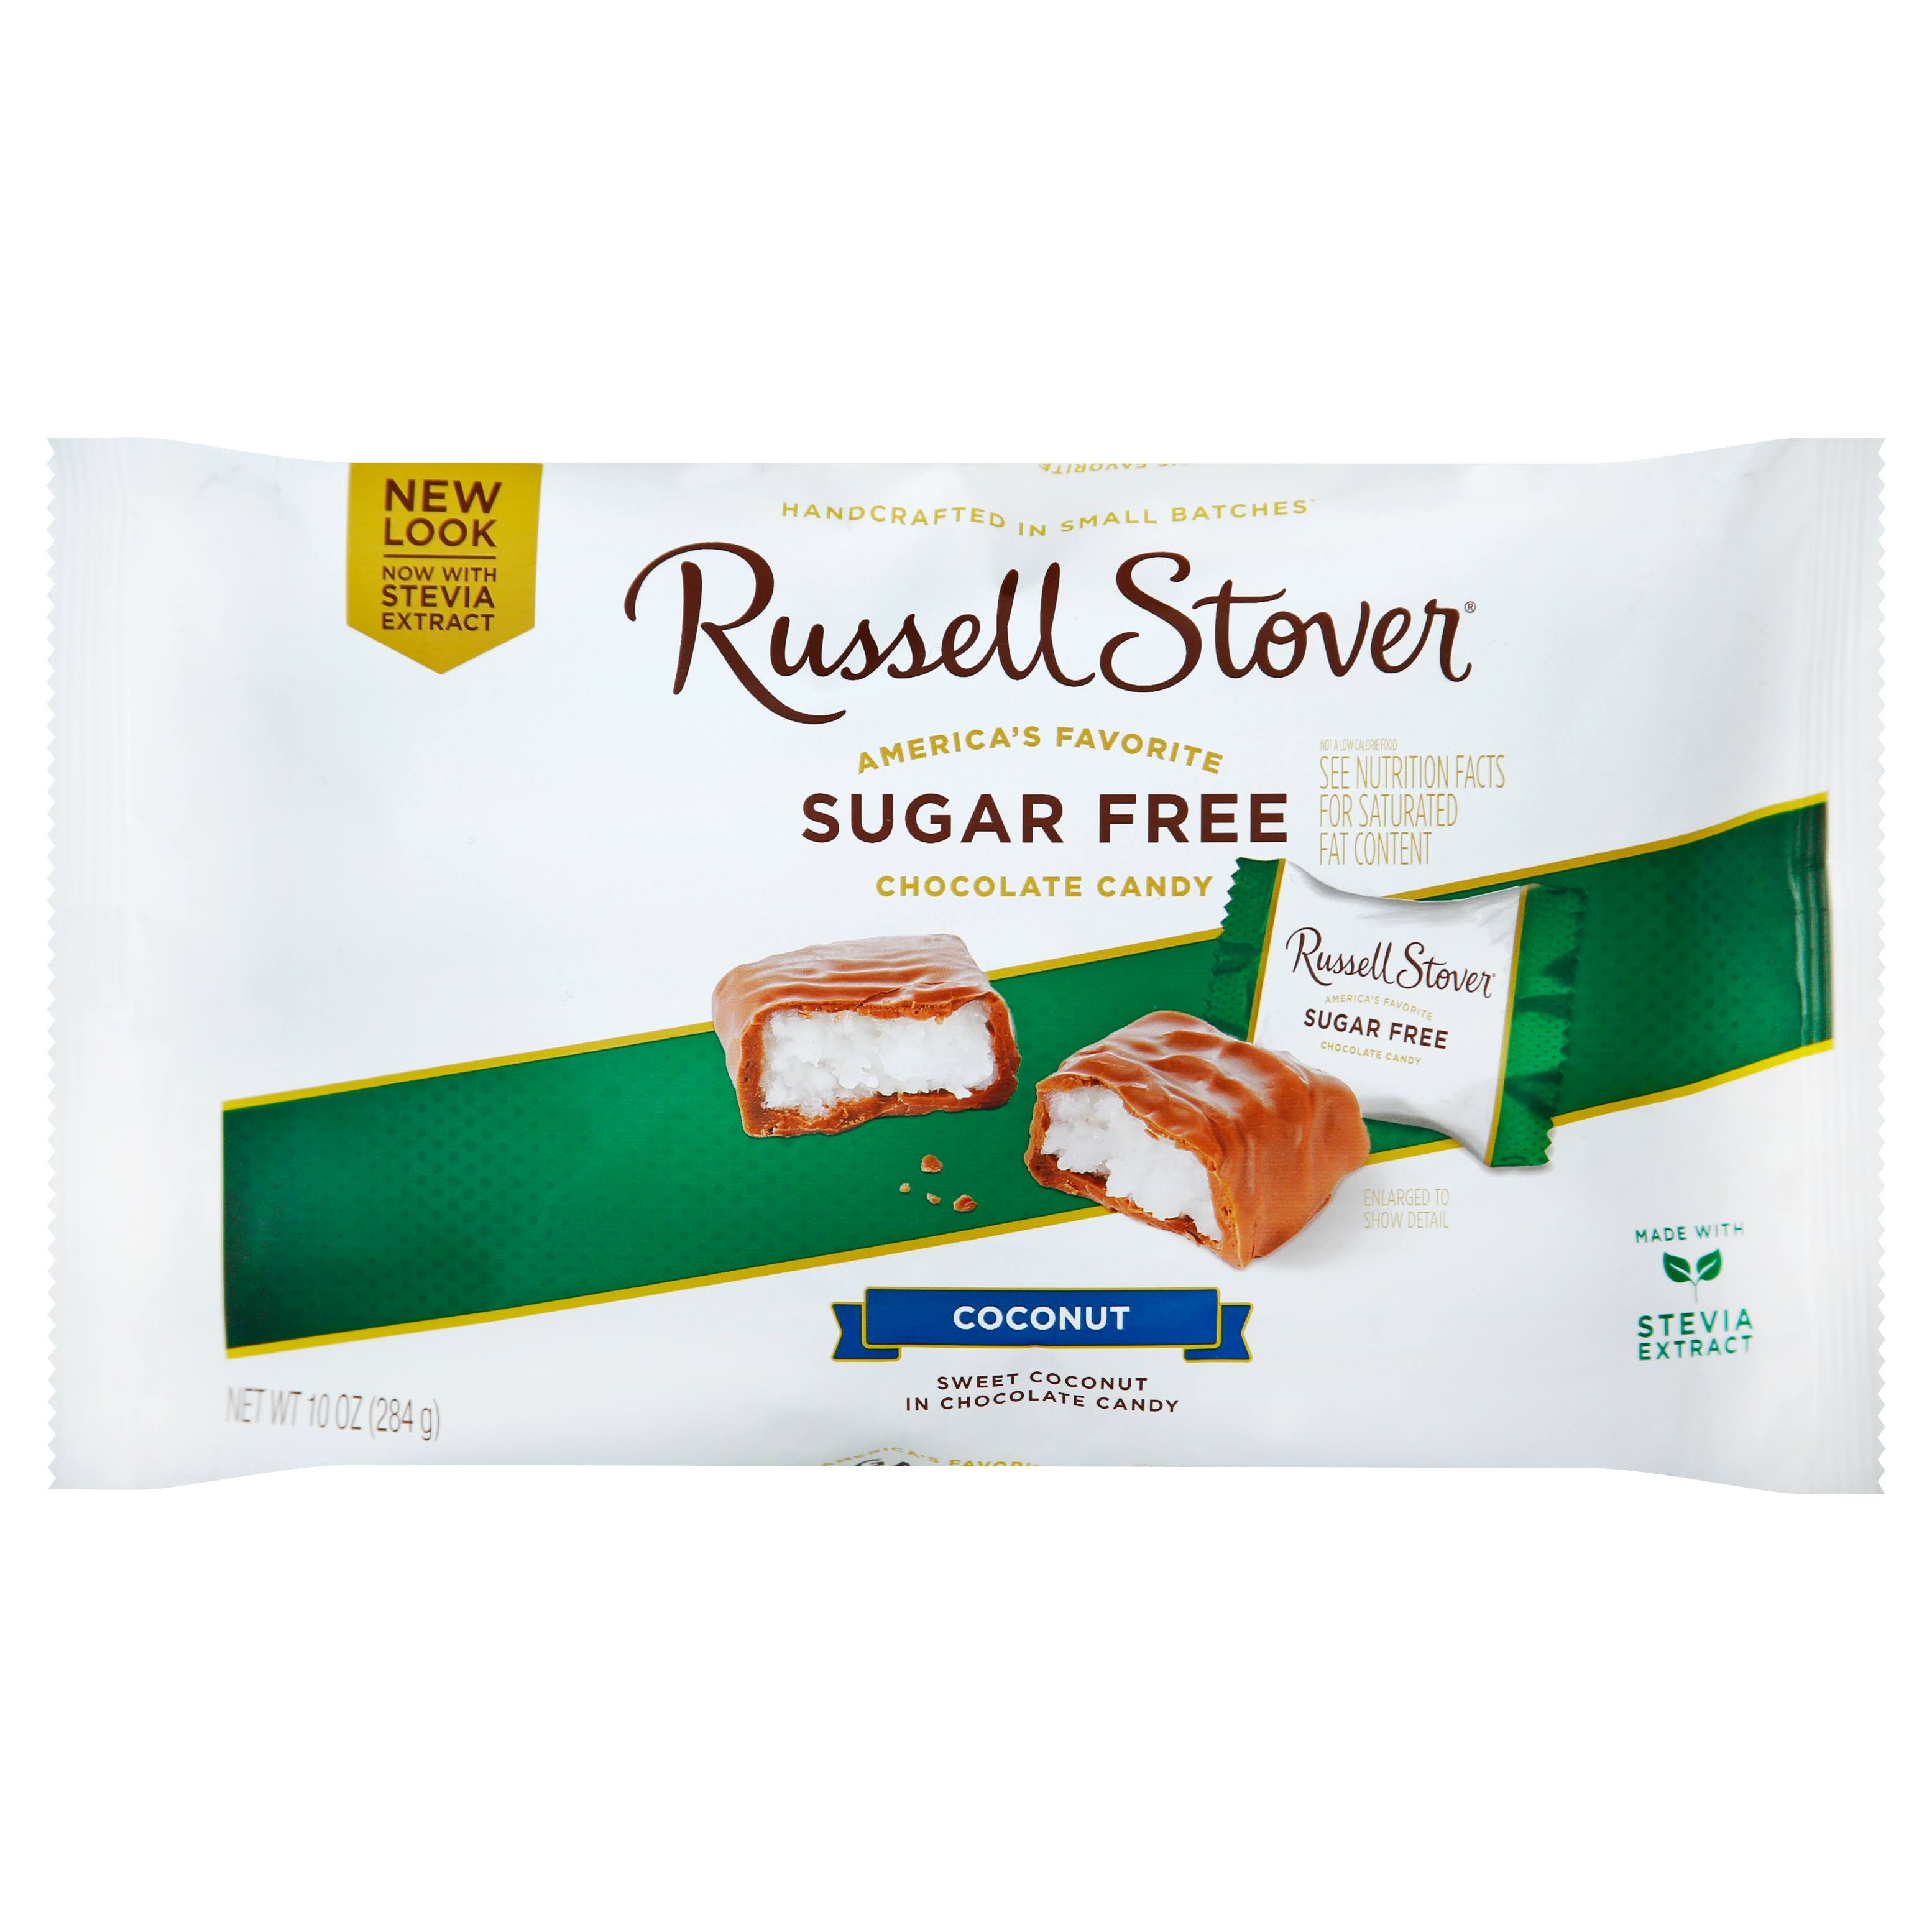 Russell Stover Sugar Free Laydown Bag Candy - Coconut, 10oz